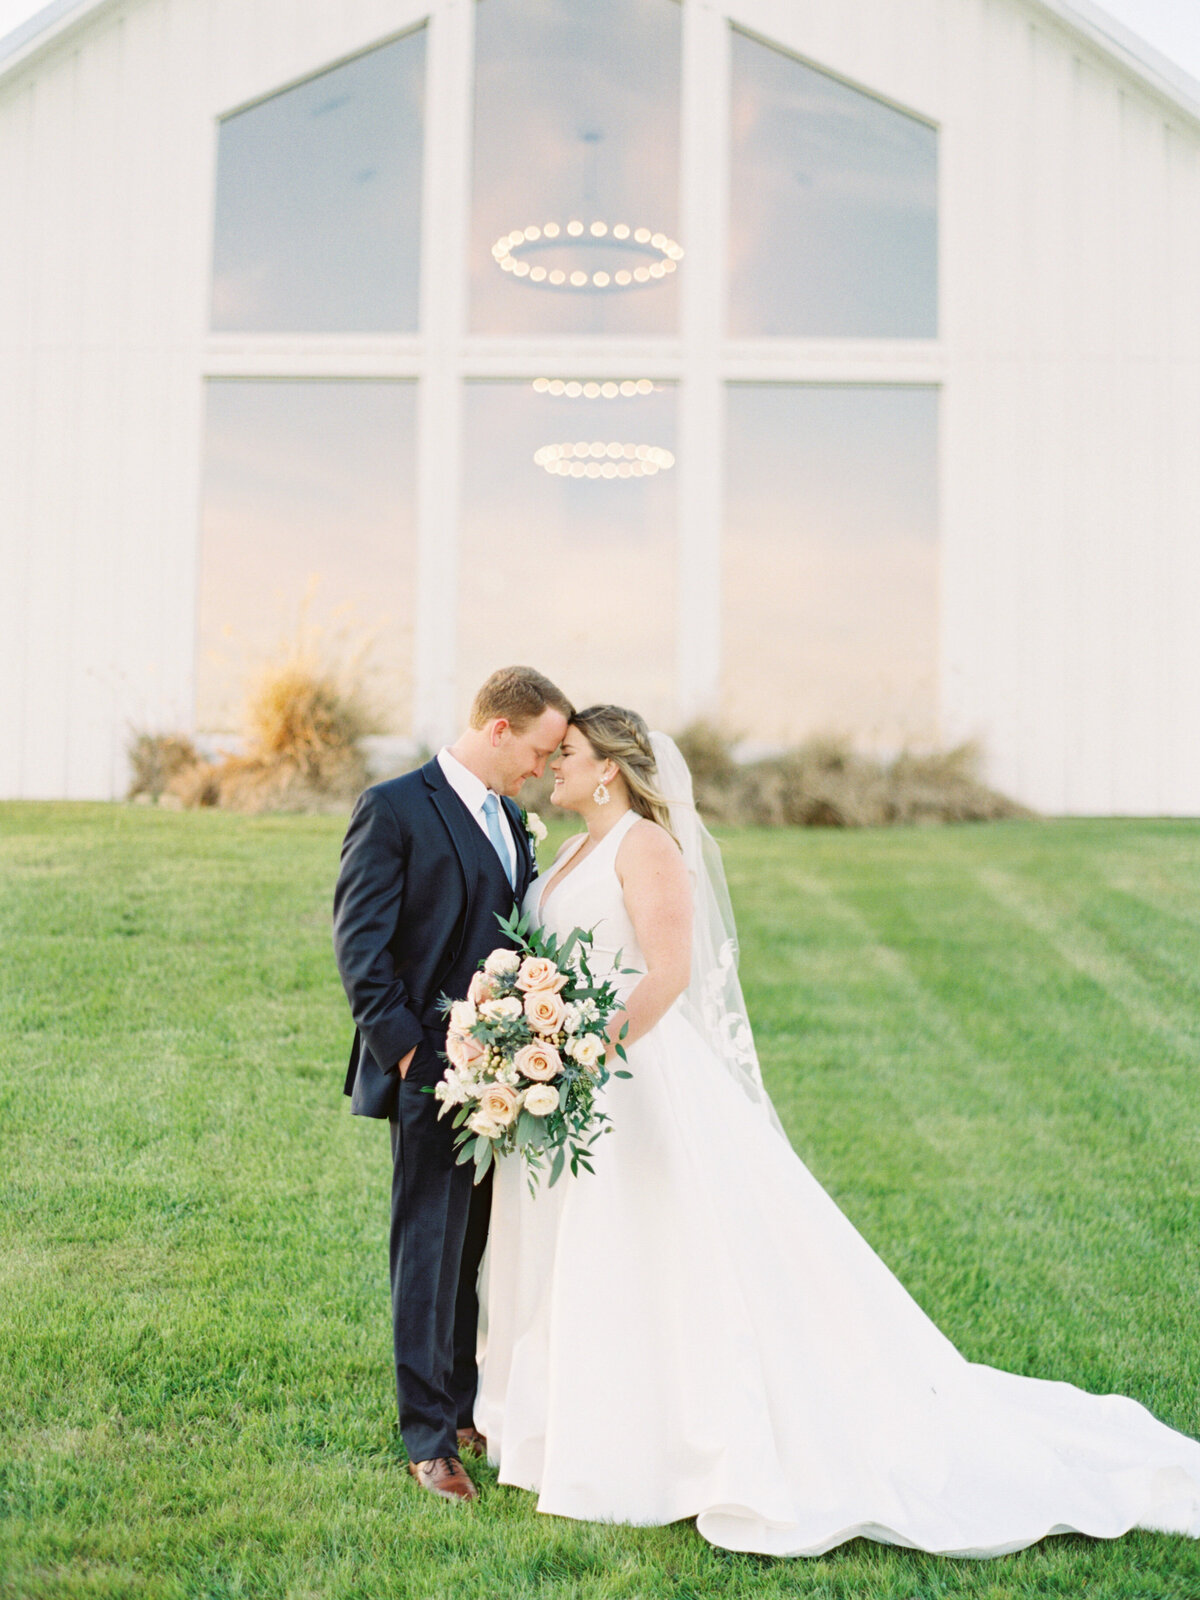 the-farmhouse-wedding-houston-texas-wedding-photographer-mackenzie-reiter-photography-75